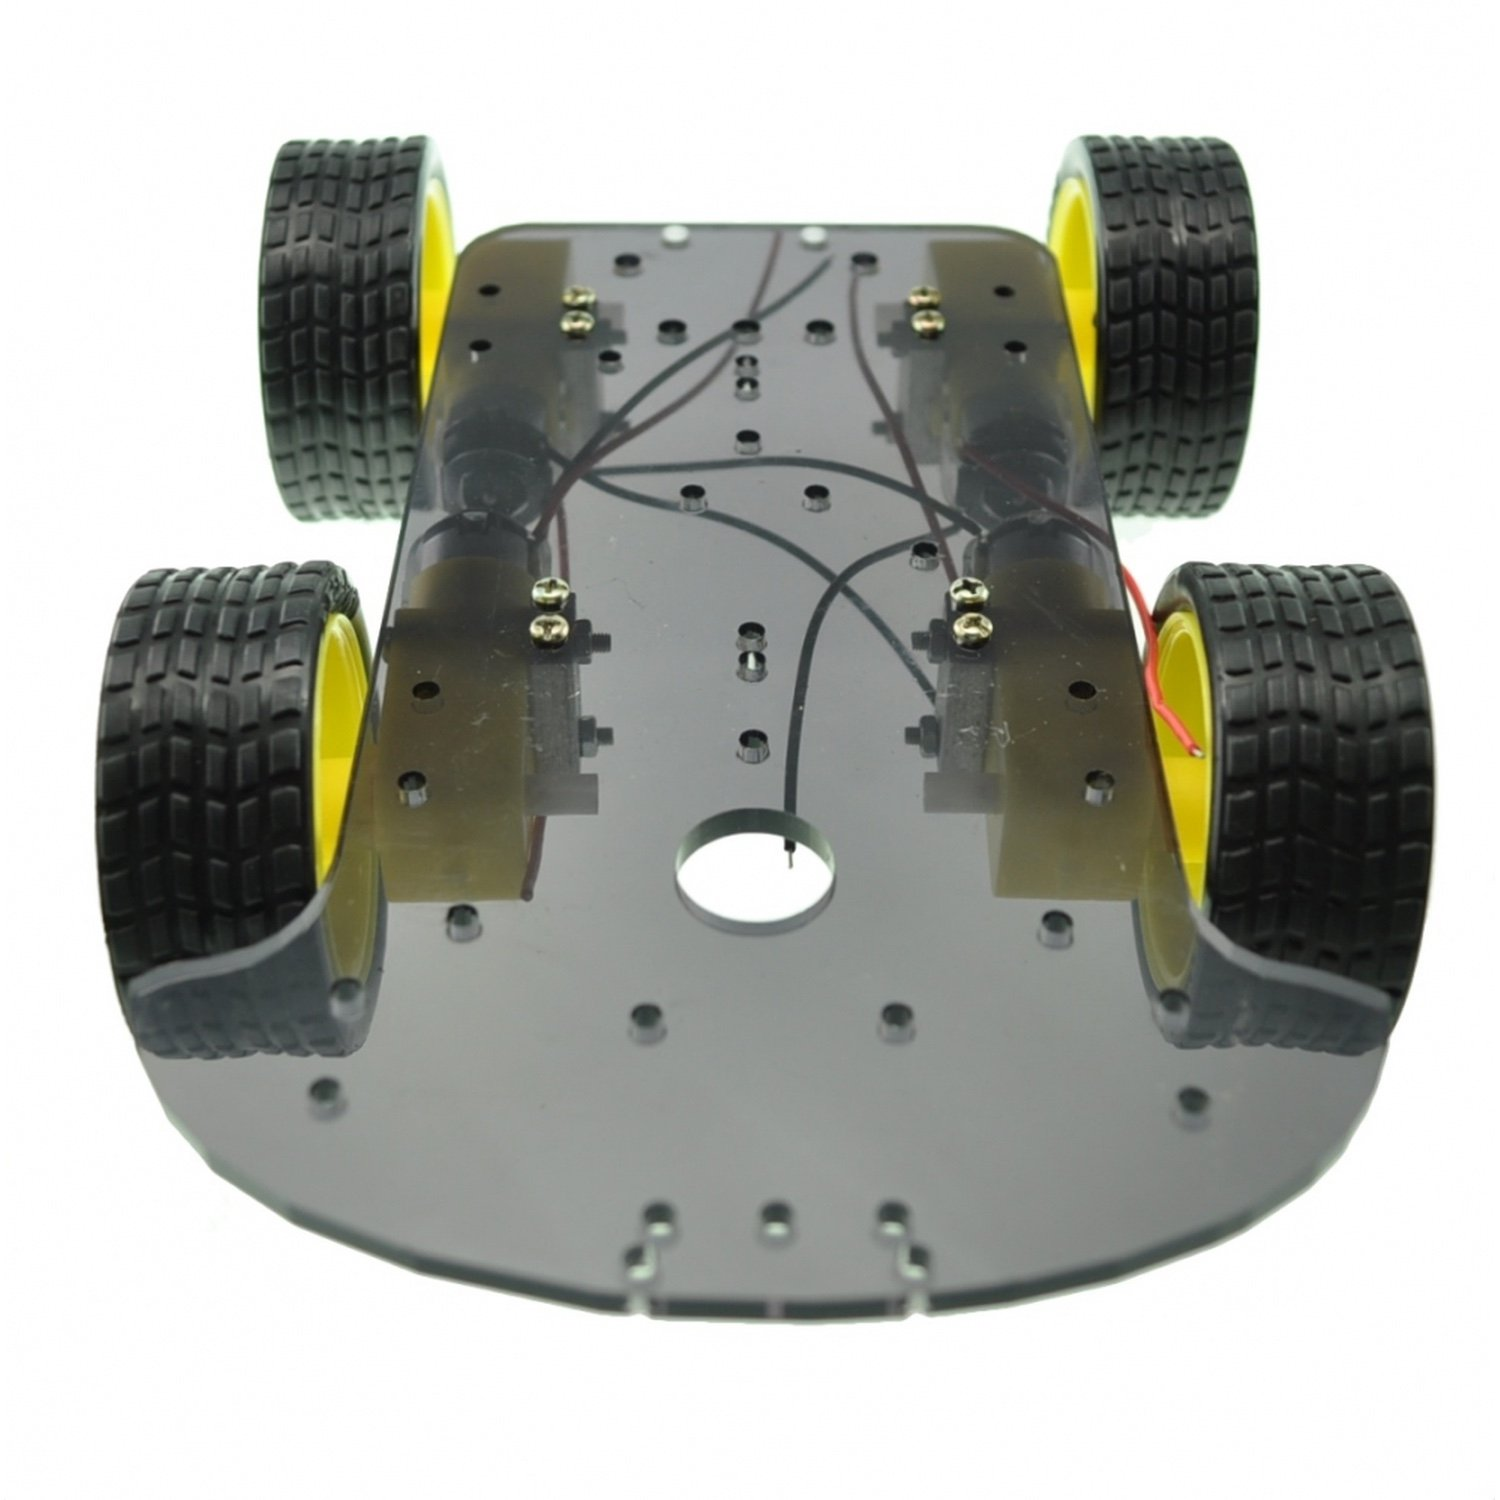 4 WD Four-wheel mobile robot Car Chassis four wheel drive smart robot car chassis for 4wd yellow black 2 x 18650